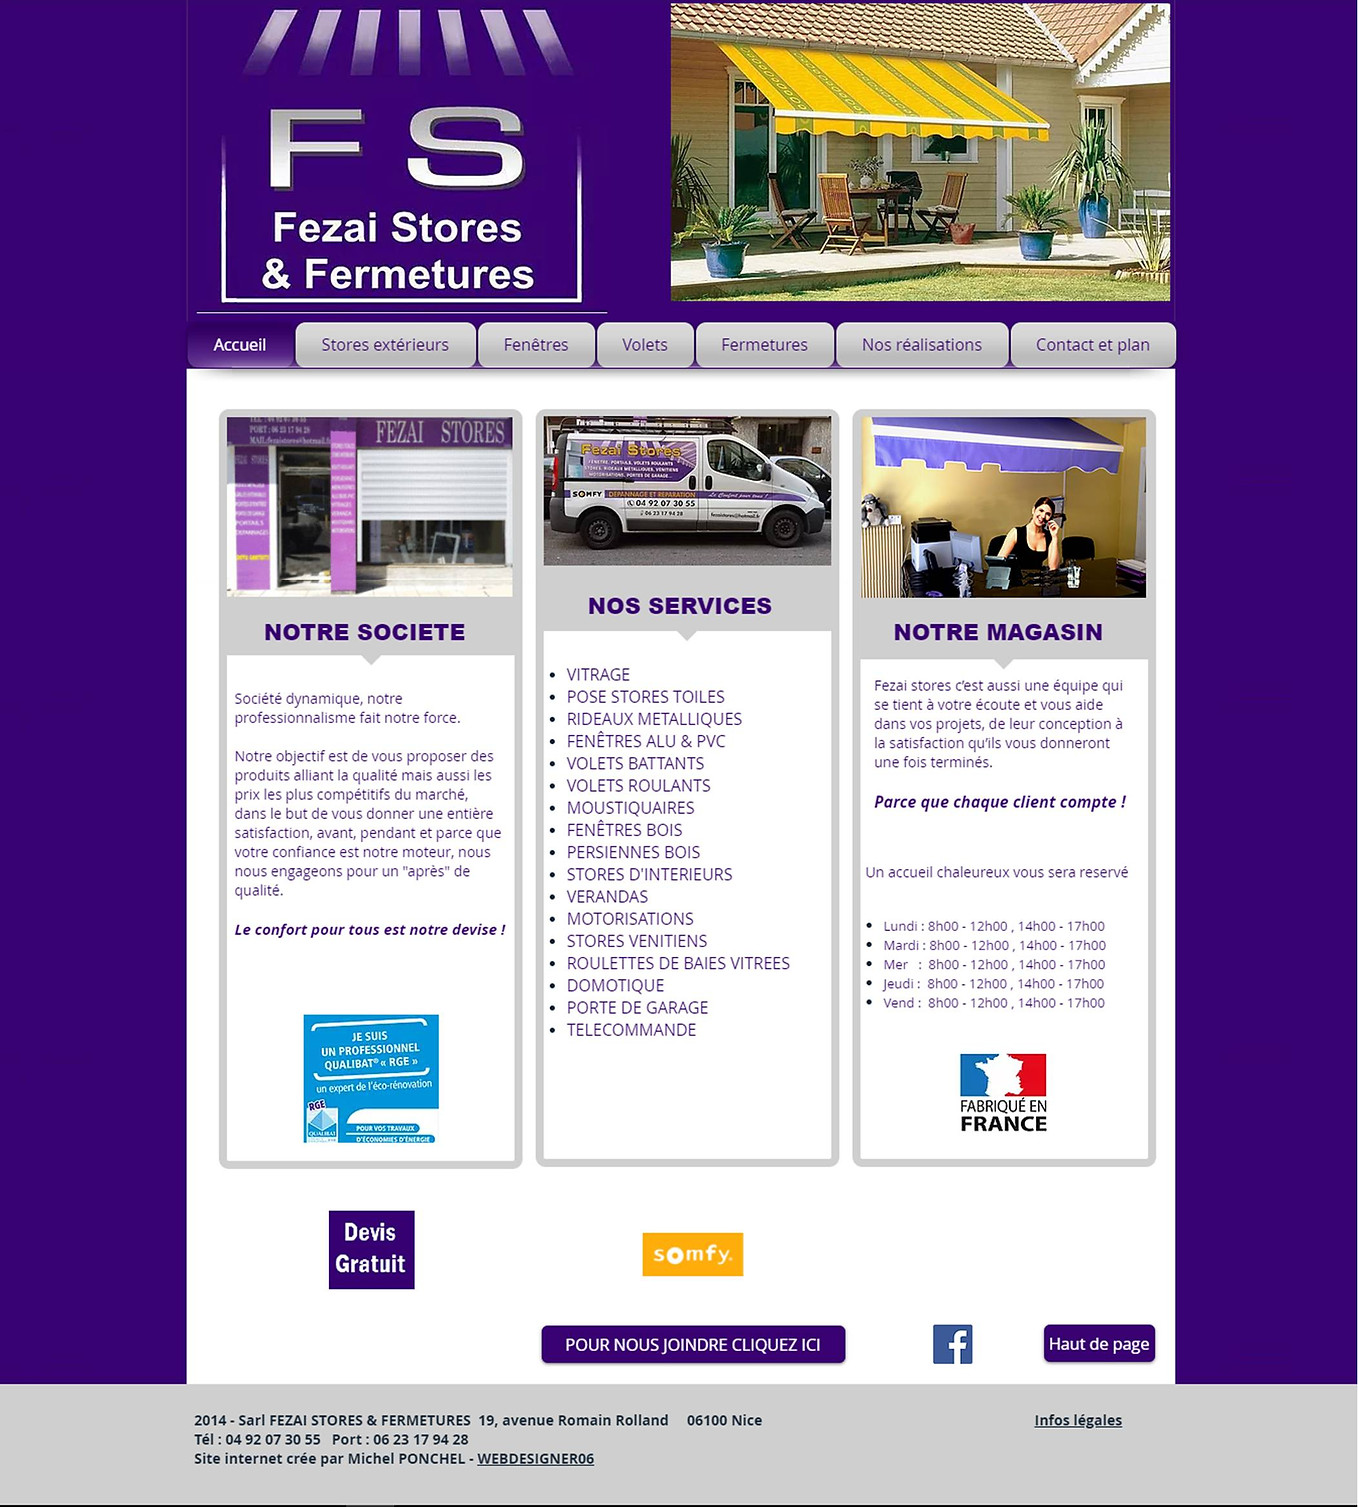 Fezai Stores & Fermetures by webdesigner06